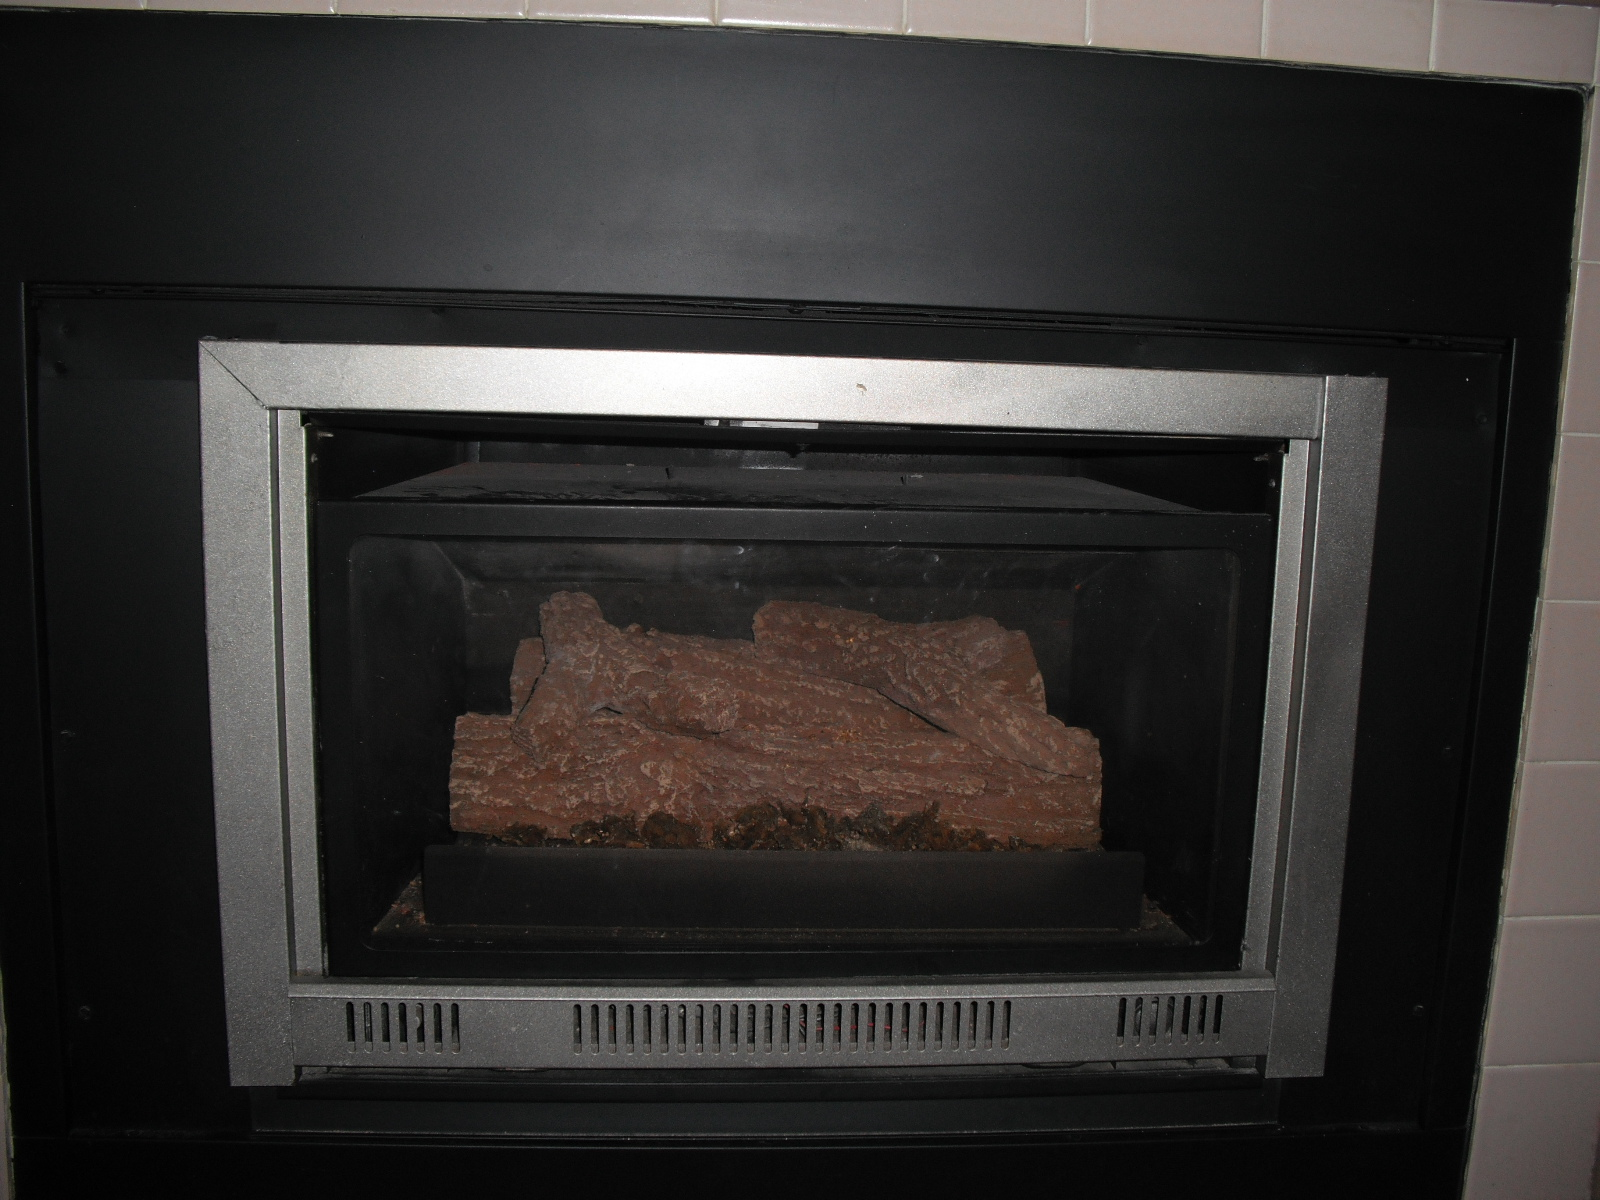 How Do I Close The Flue On My Gas Fireplace Fireplaces Cleaning